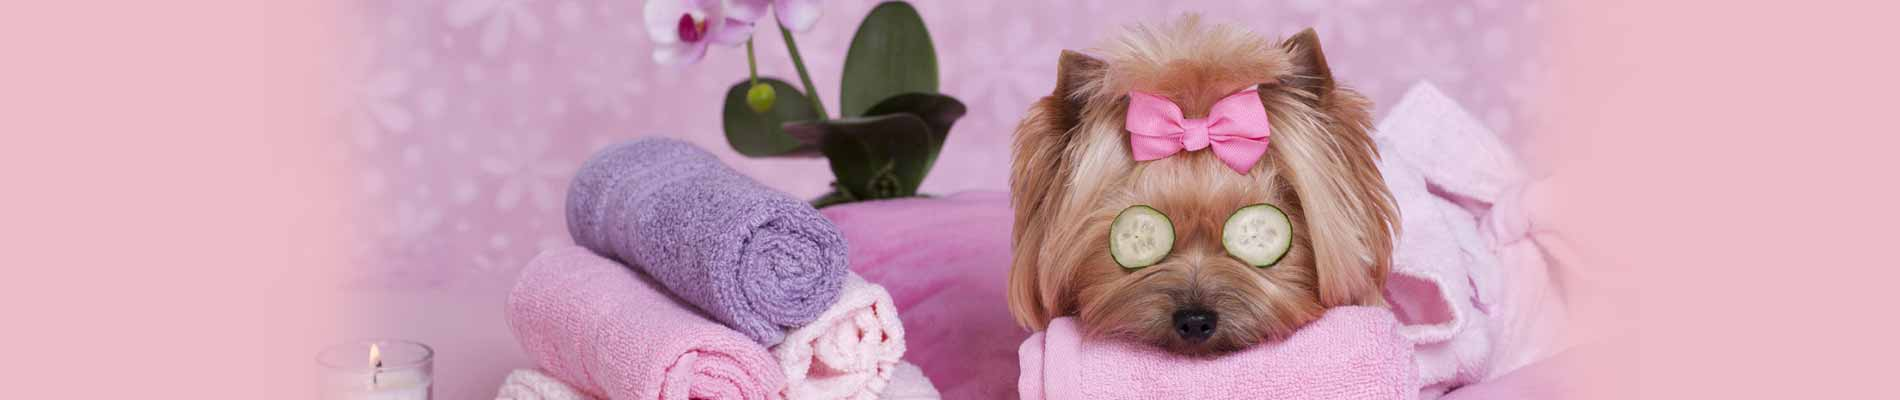 Coleen's Pet Salon - Dog Grooming Kildare , Dog Grooming Straffan, Dog Grooming Clane, Dog Grooming Maynooth - Home Slider 1